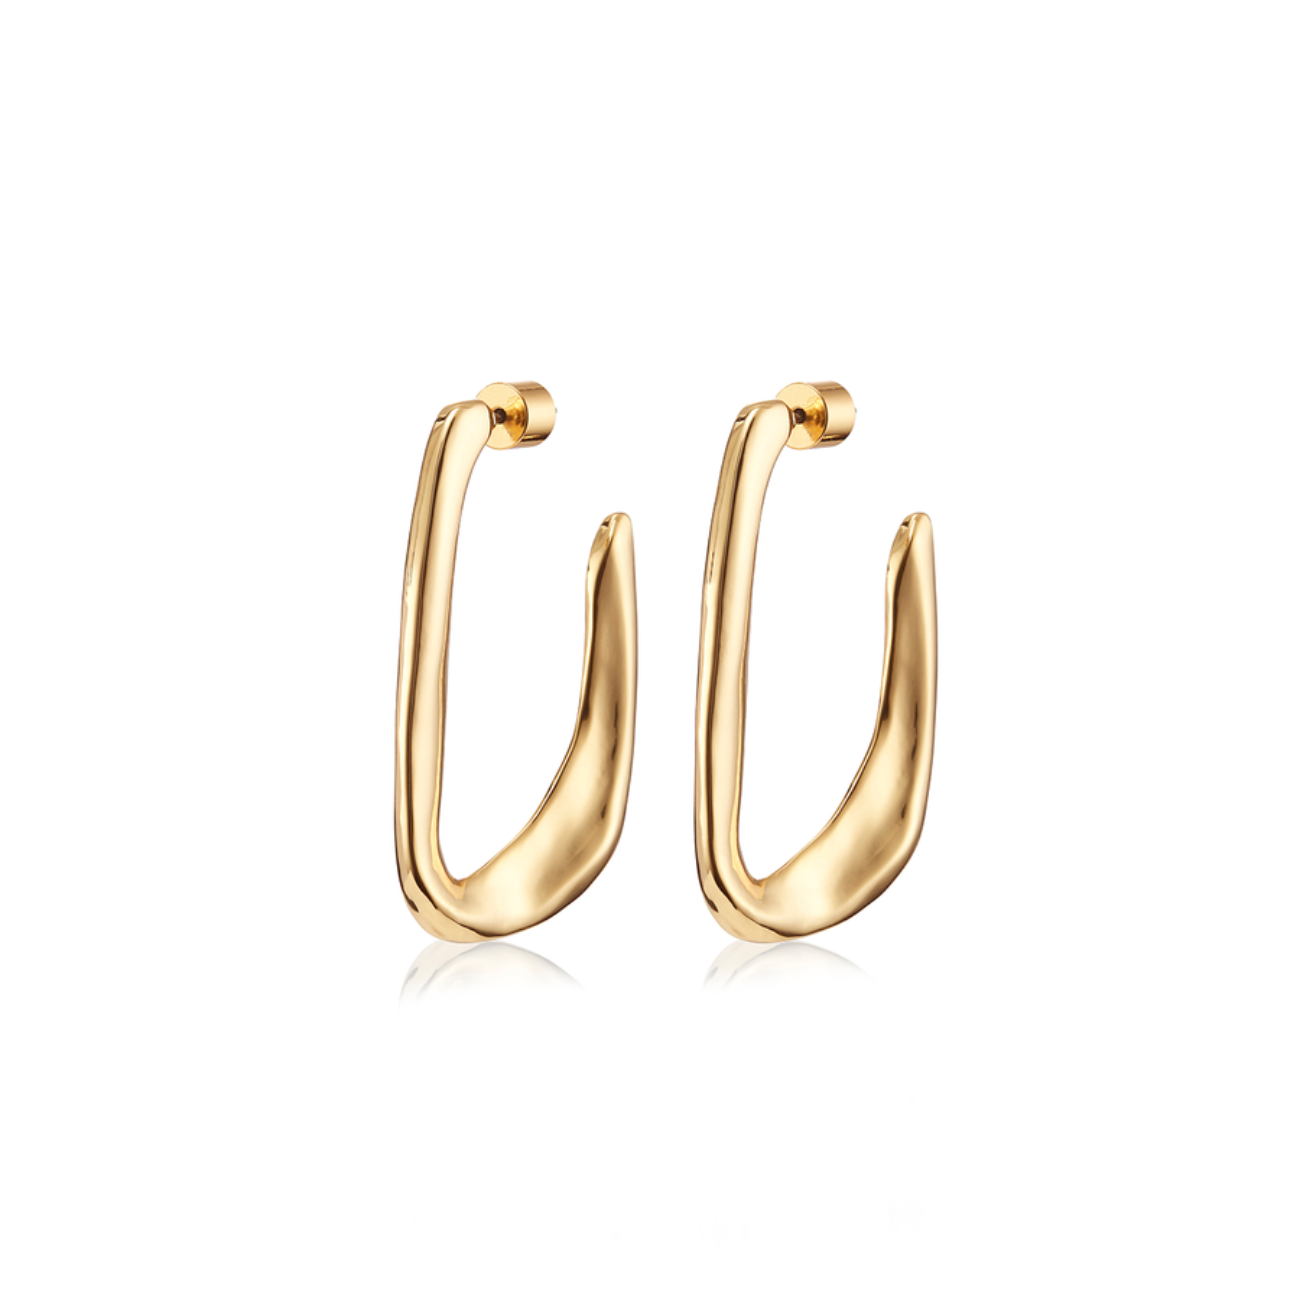 JENNY BIRD - EDITH HOOPS IN GOLD